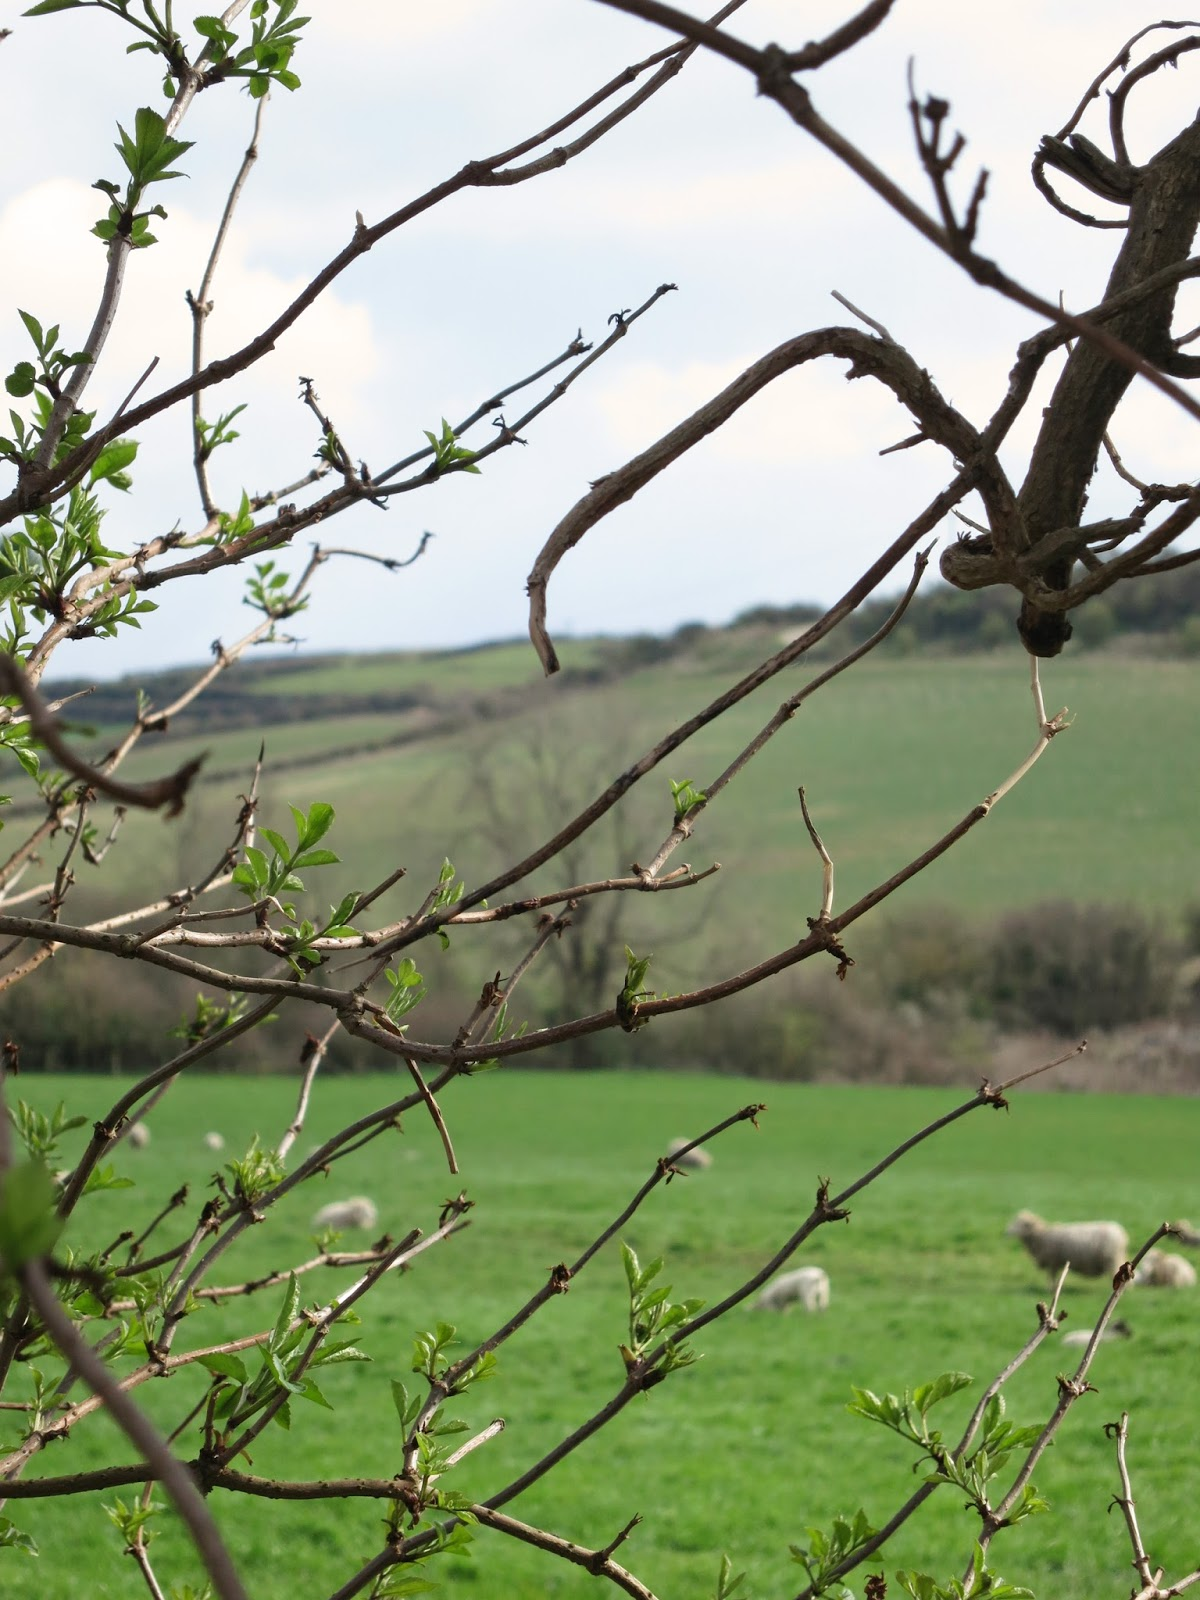 Sheep in a field - glimpsed between branches of tree with opening leaves.